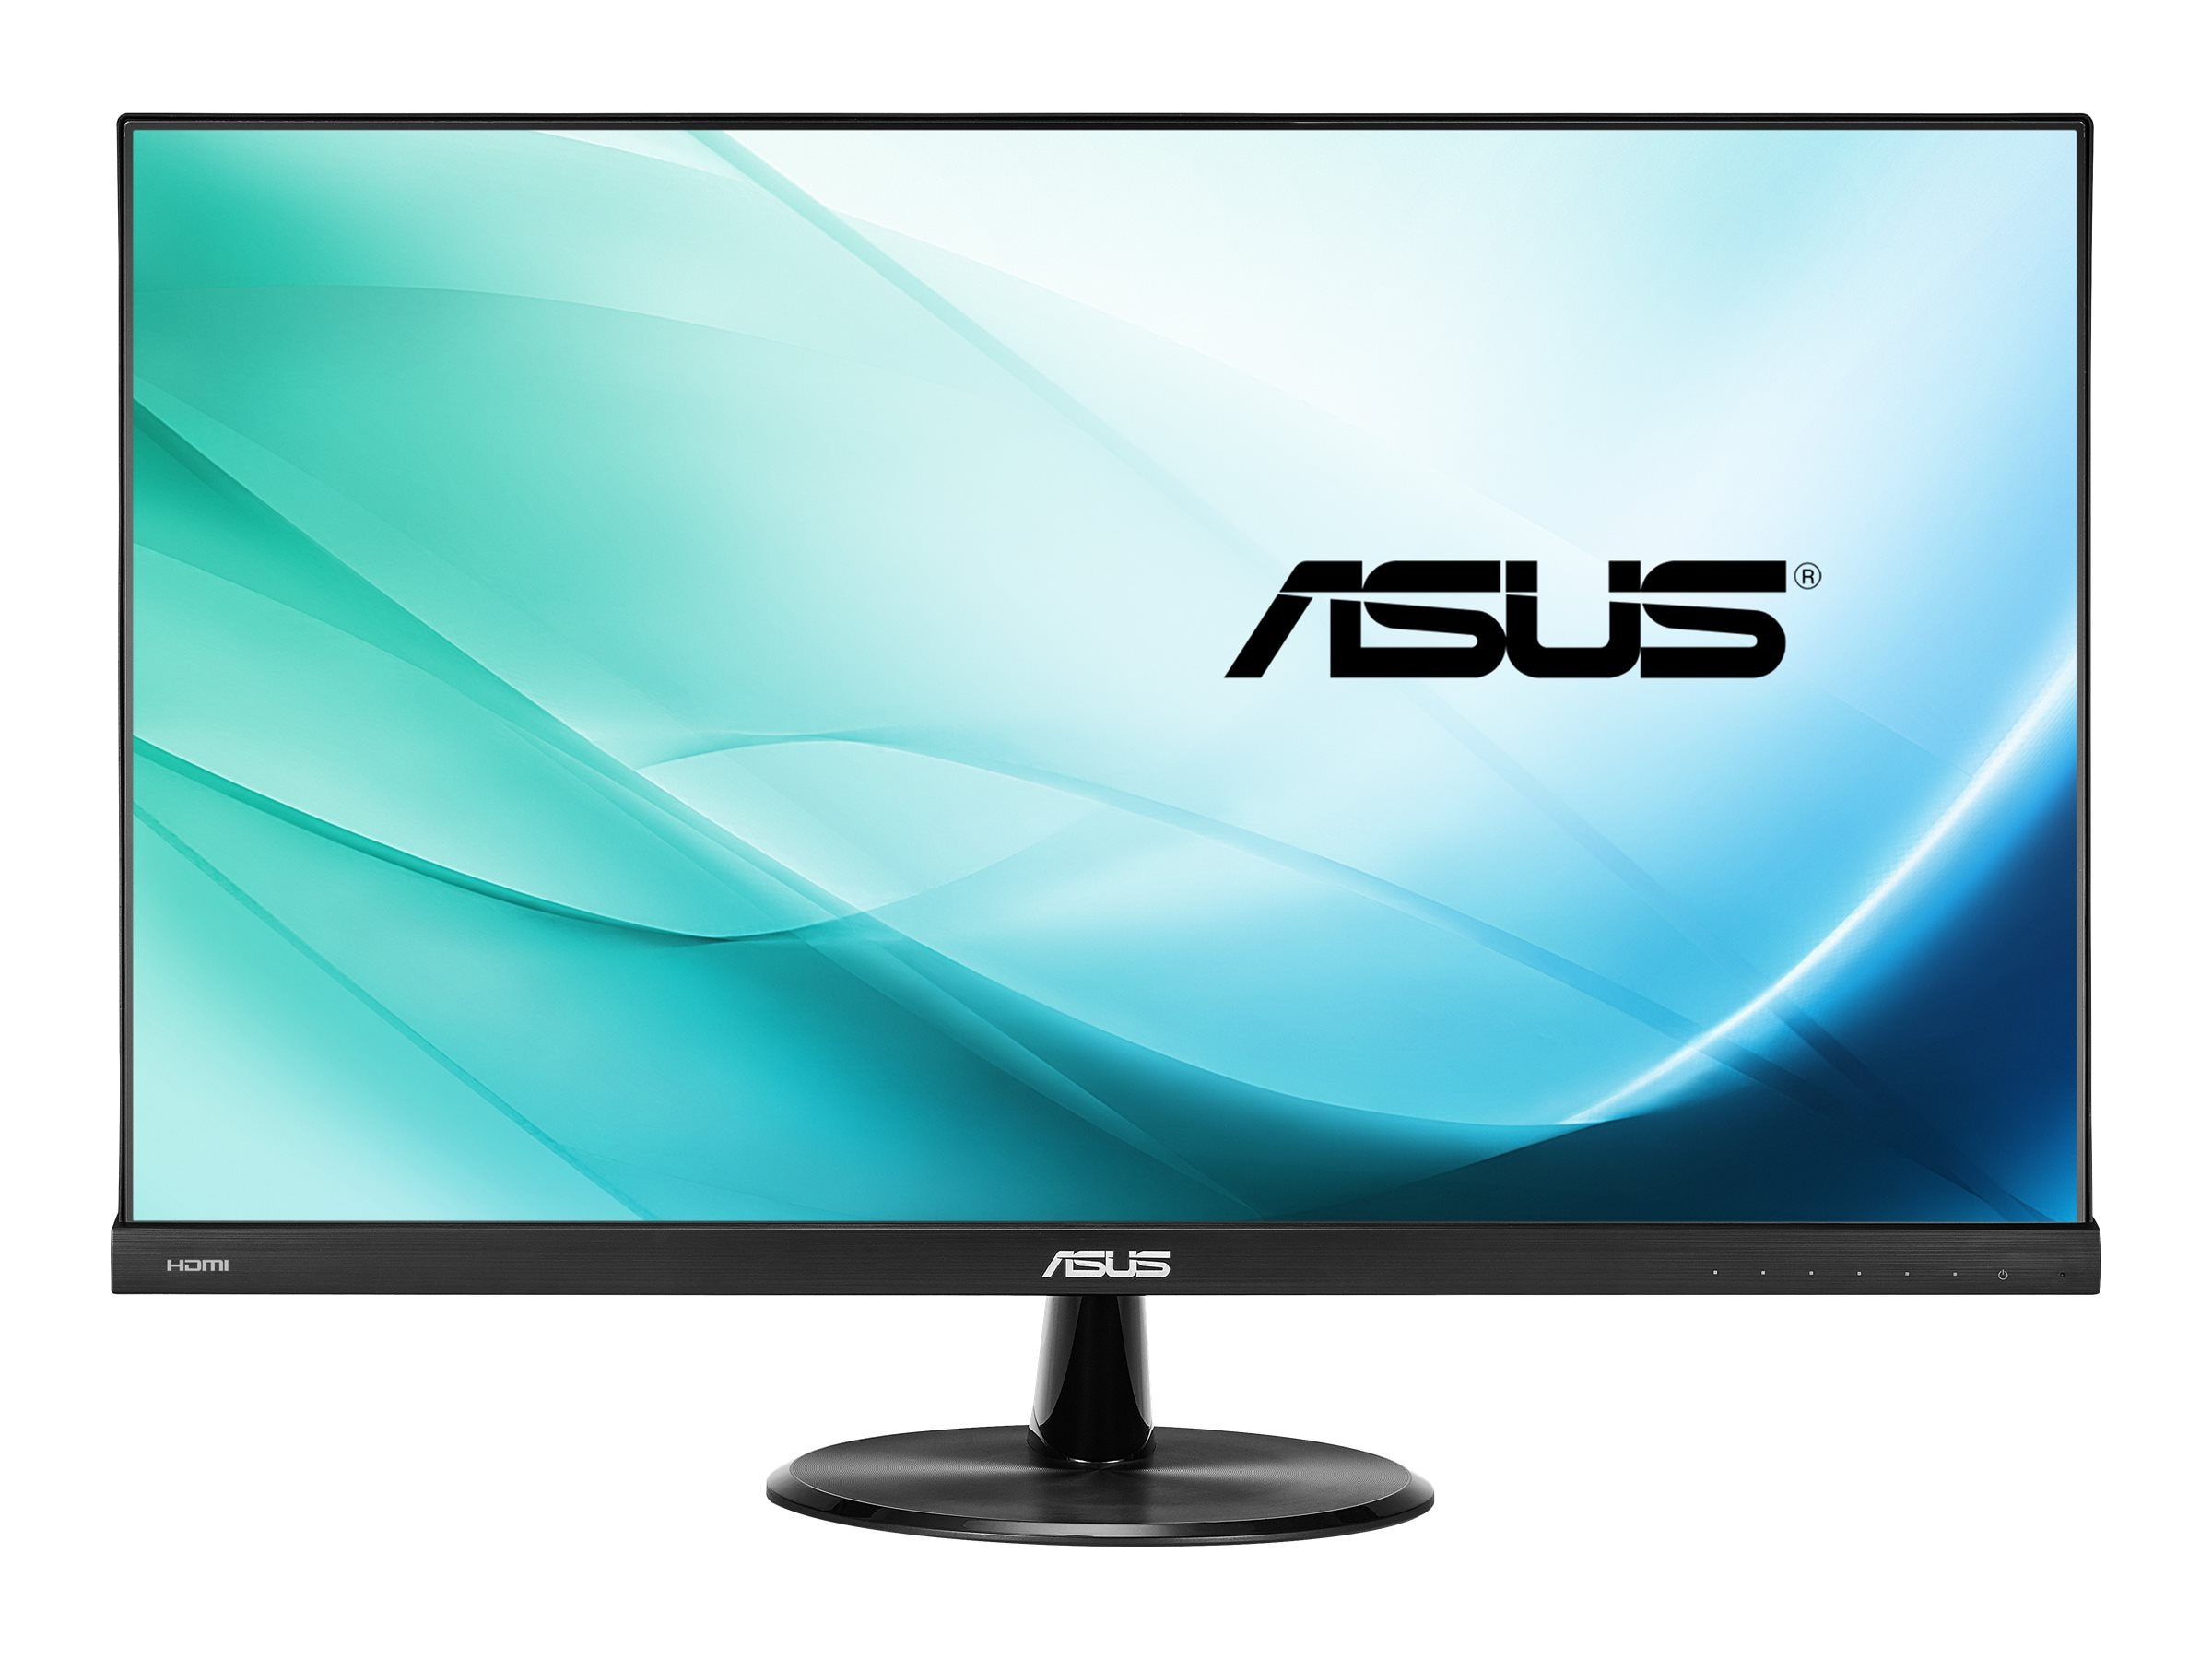 Asus 23 VP239H-P Full HD LED-LCD Monitor, Black, VP239H-P, 30866585, Monitors - LED-LCD